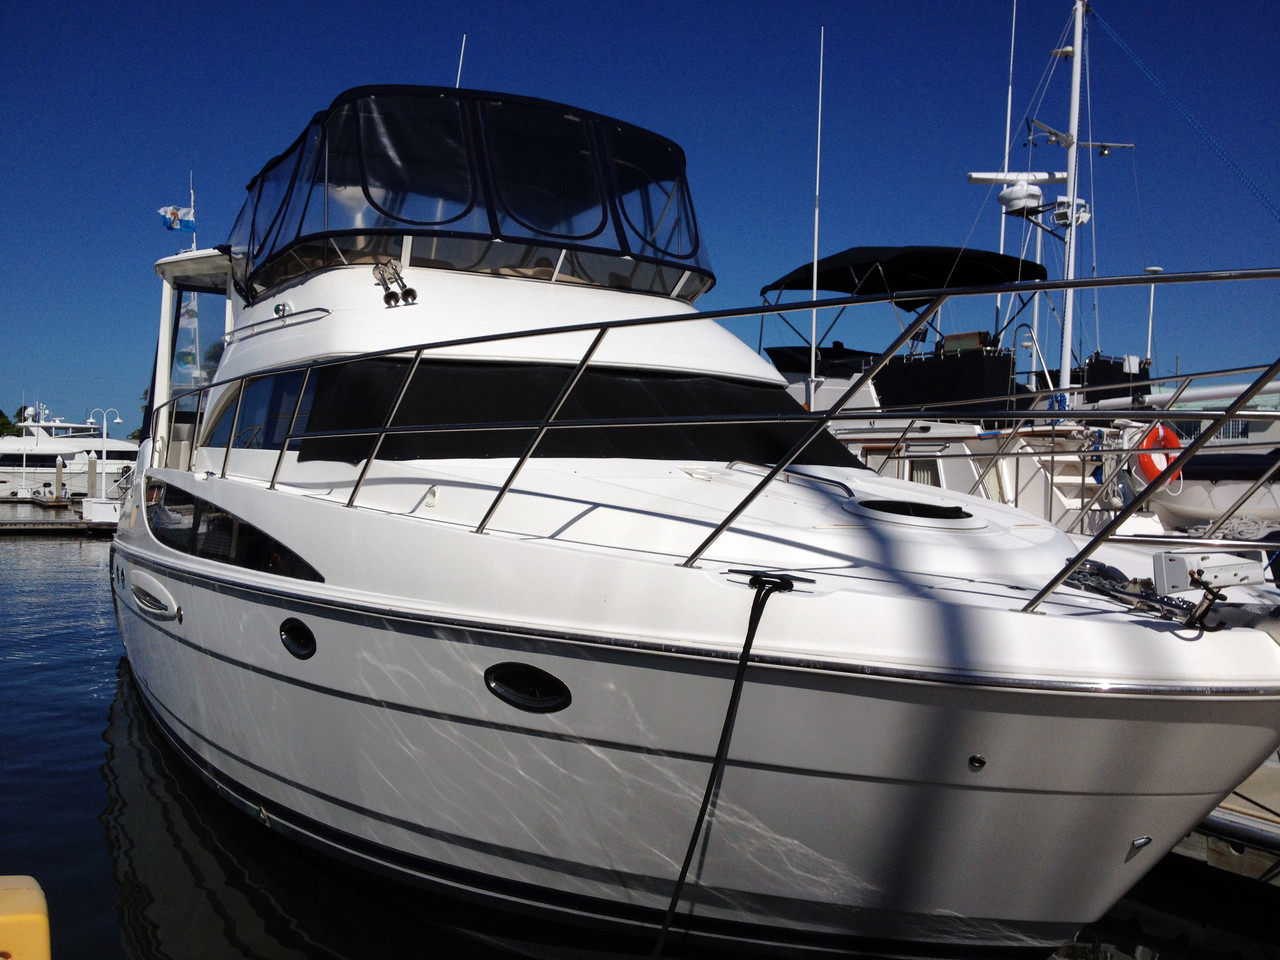 2005 Used Meridian 459 Cpmy Motor Yacht For Sale